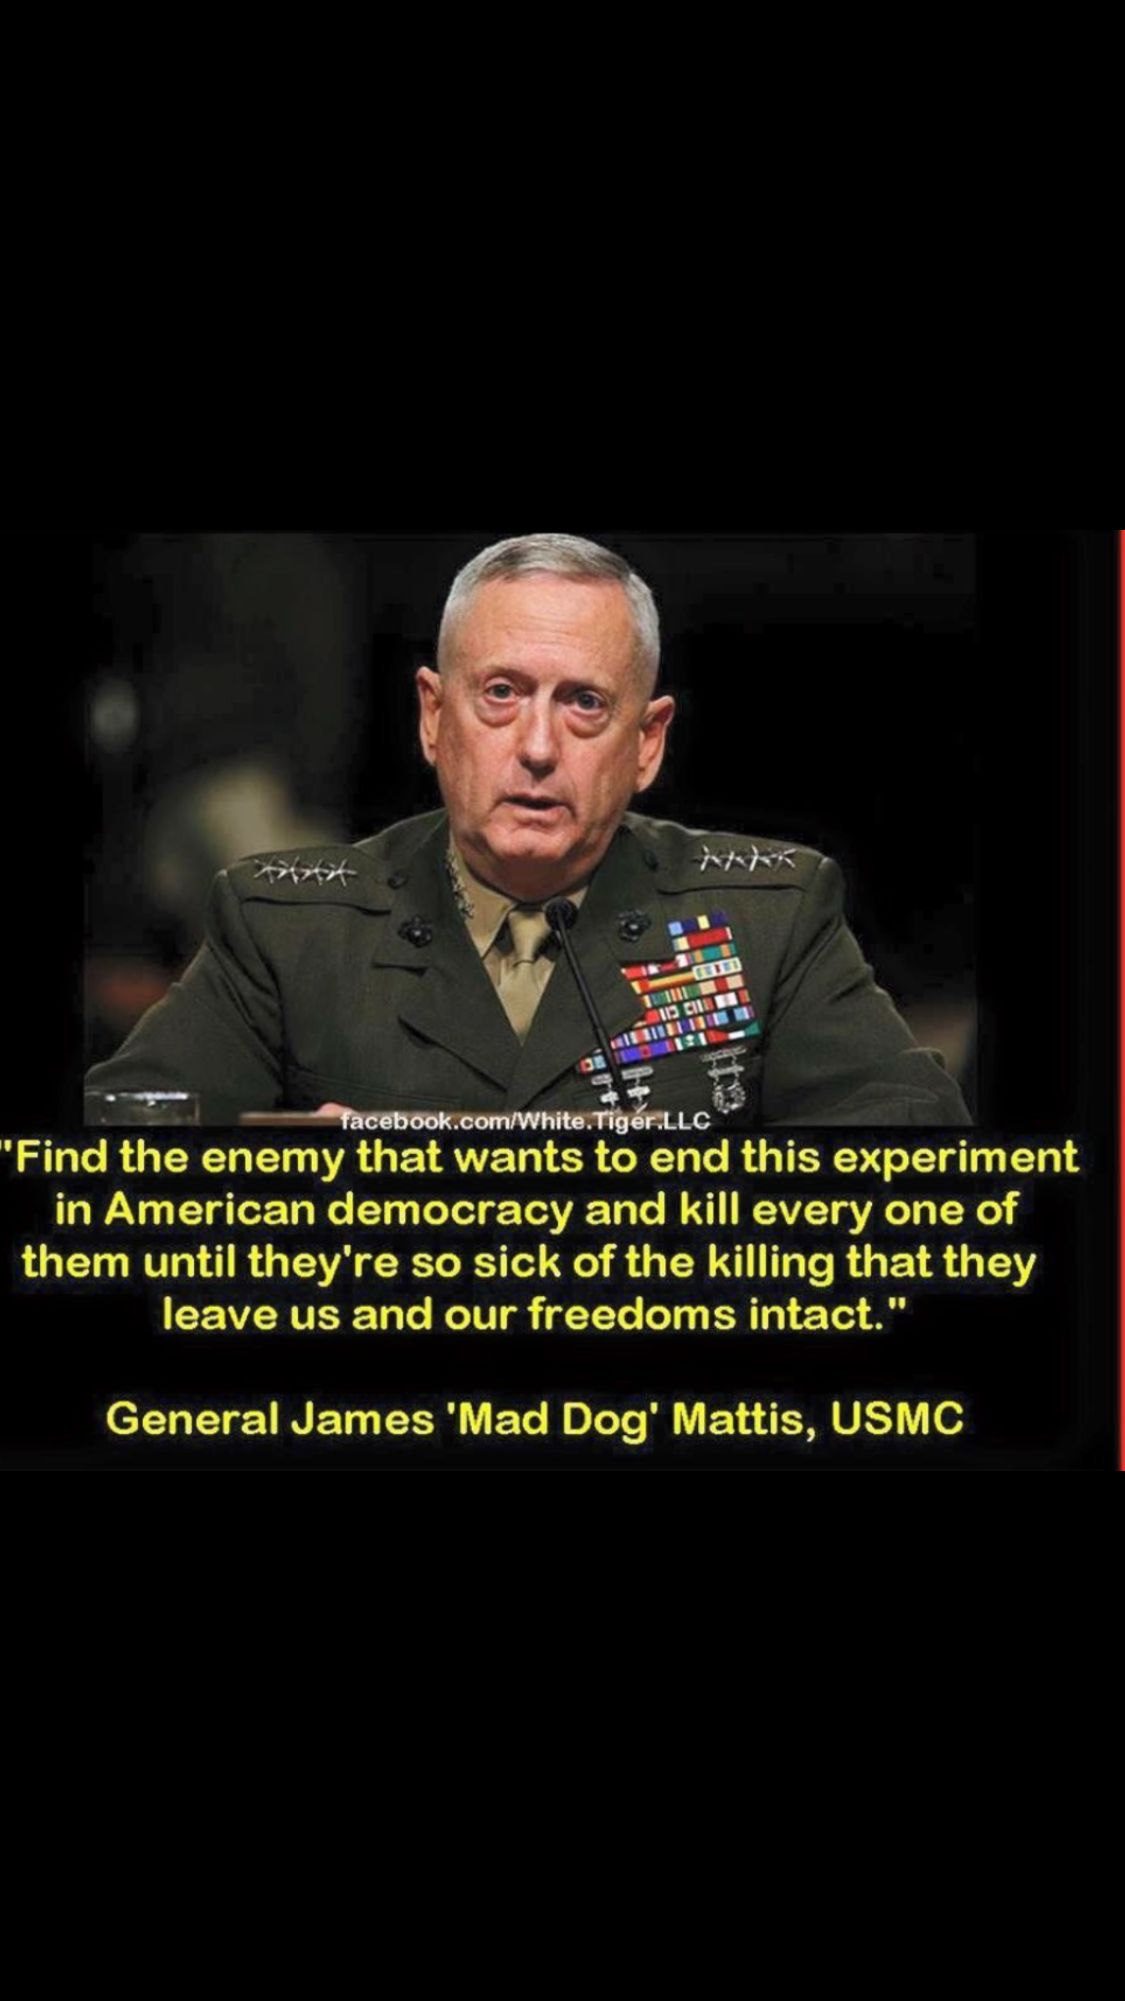 Pin by Frank Bunch on Mad dog MATTIS   Movie posters, Movies